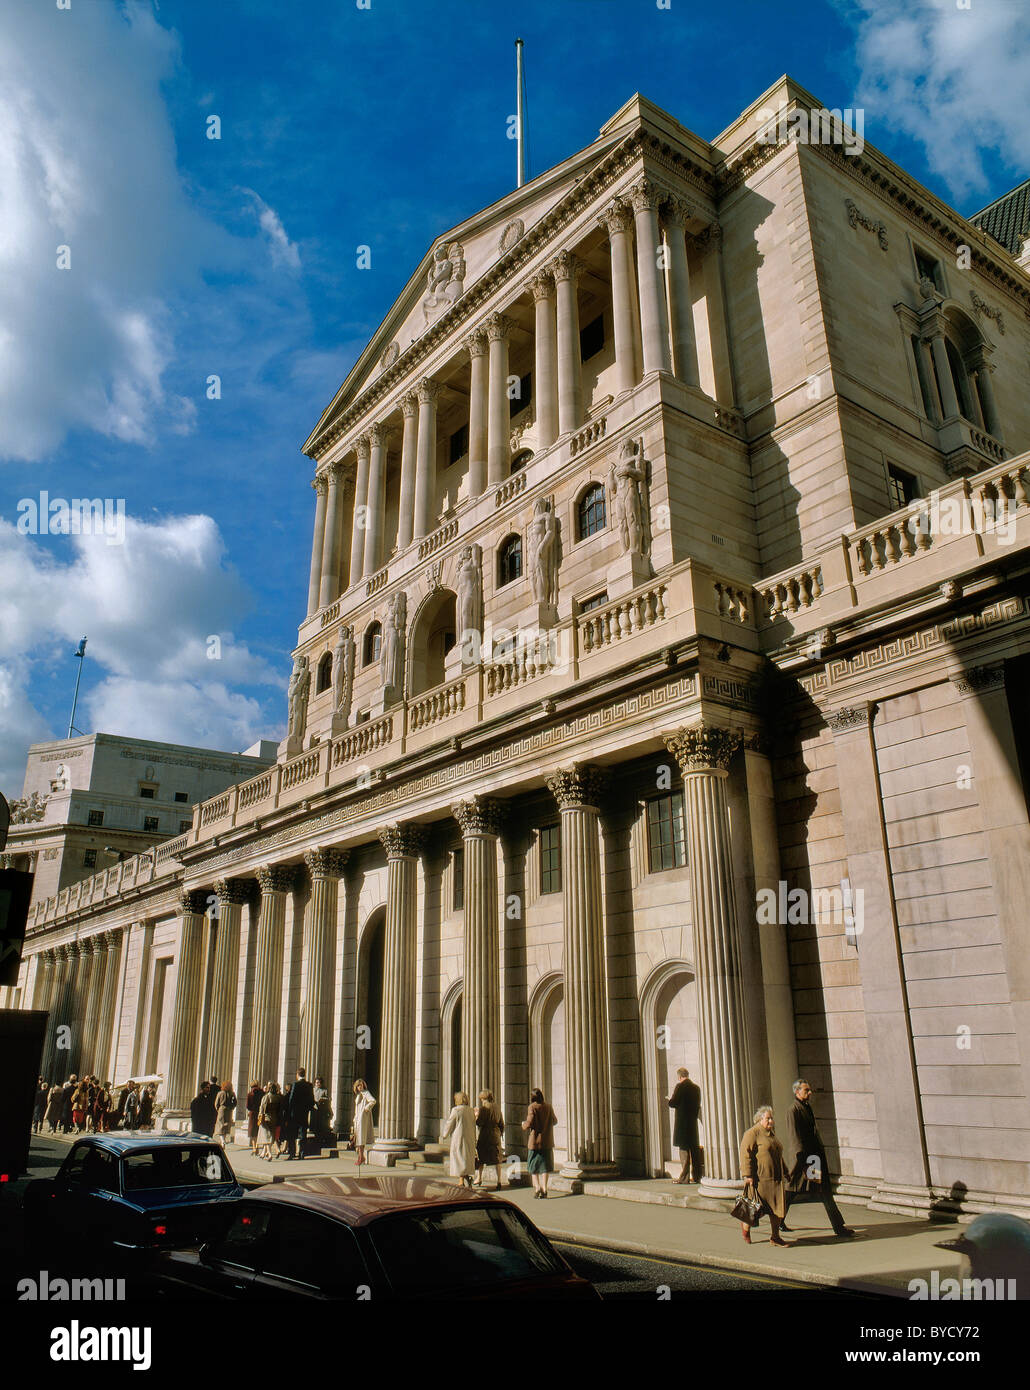 The Bank of England building on Threadneedle Street, City of London - Stock Image